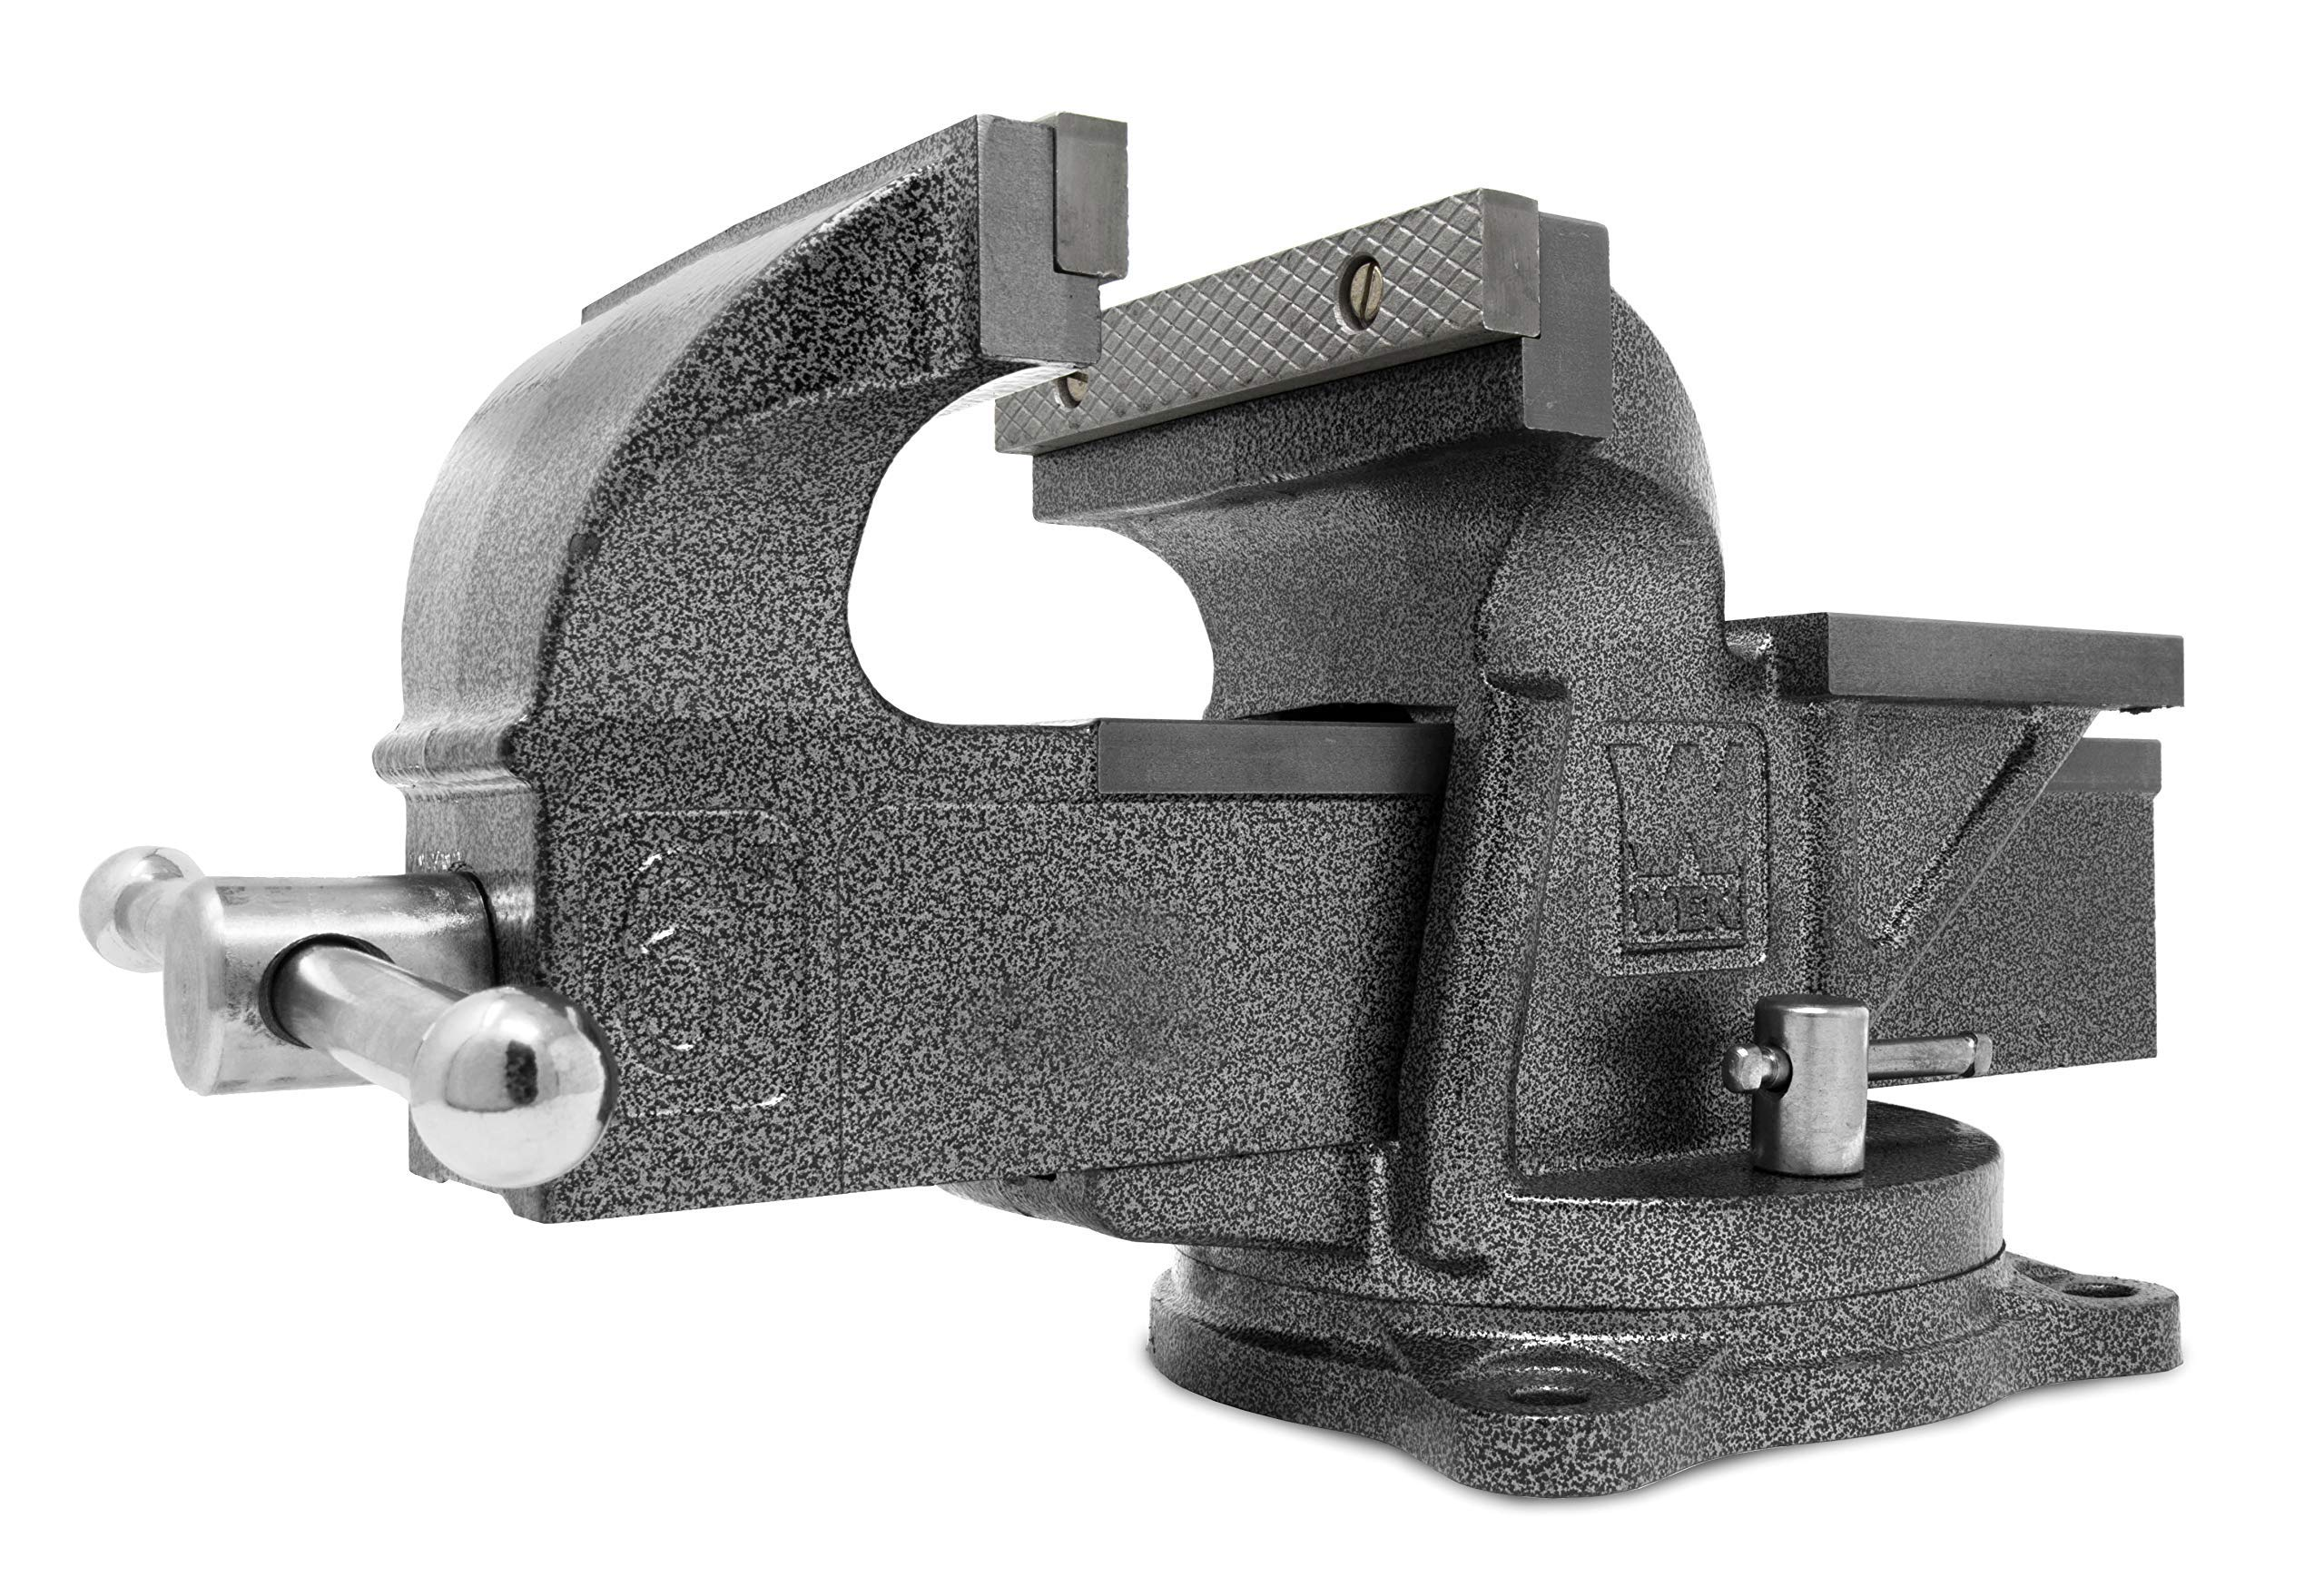 WEN 456BV 6-Inch Heavy Duty Cast Iron Bench Vise with Swivel Base (Renewed) by WEN (Image #1)